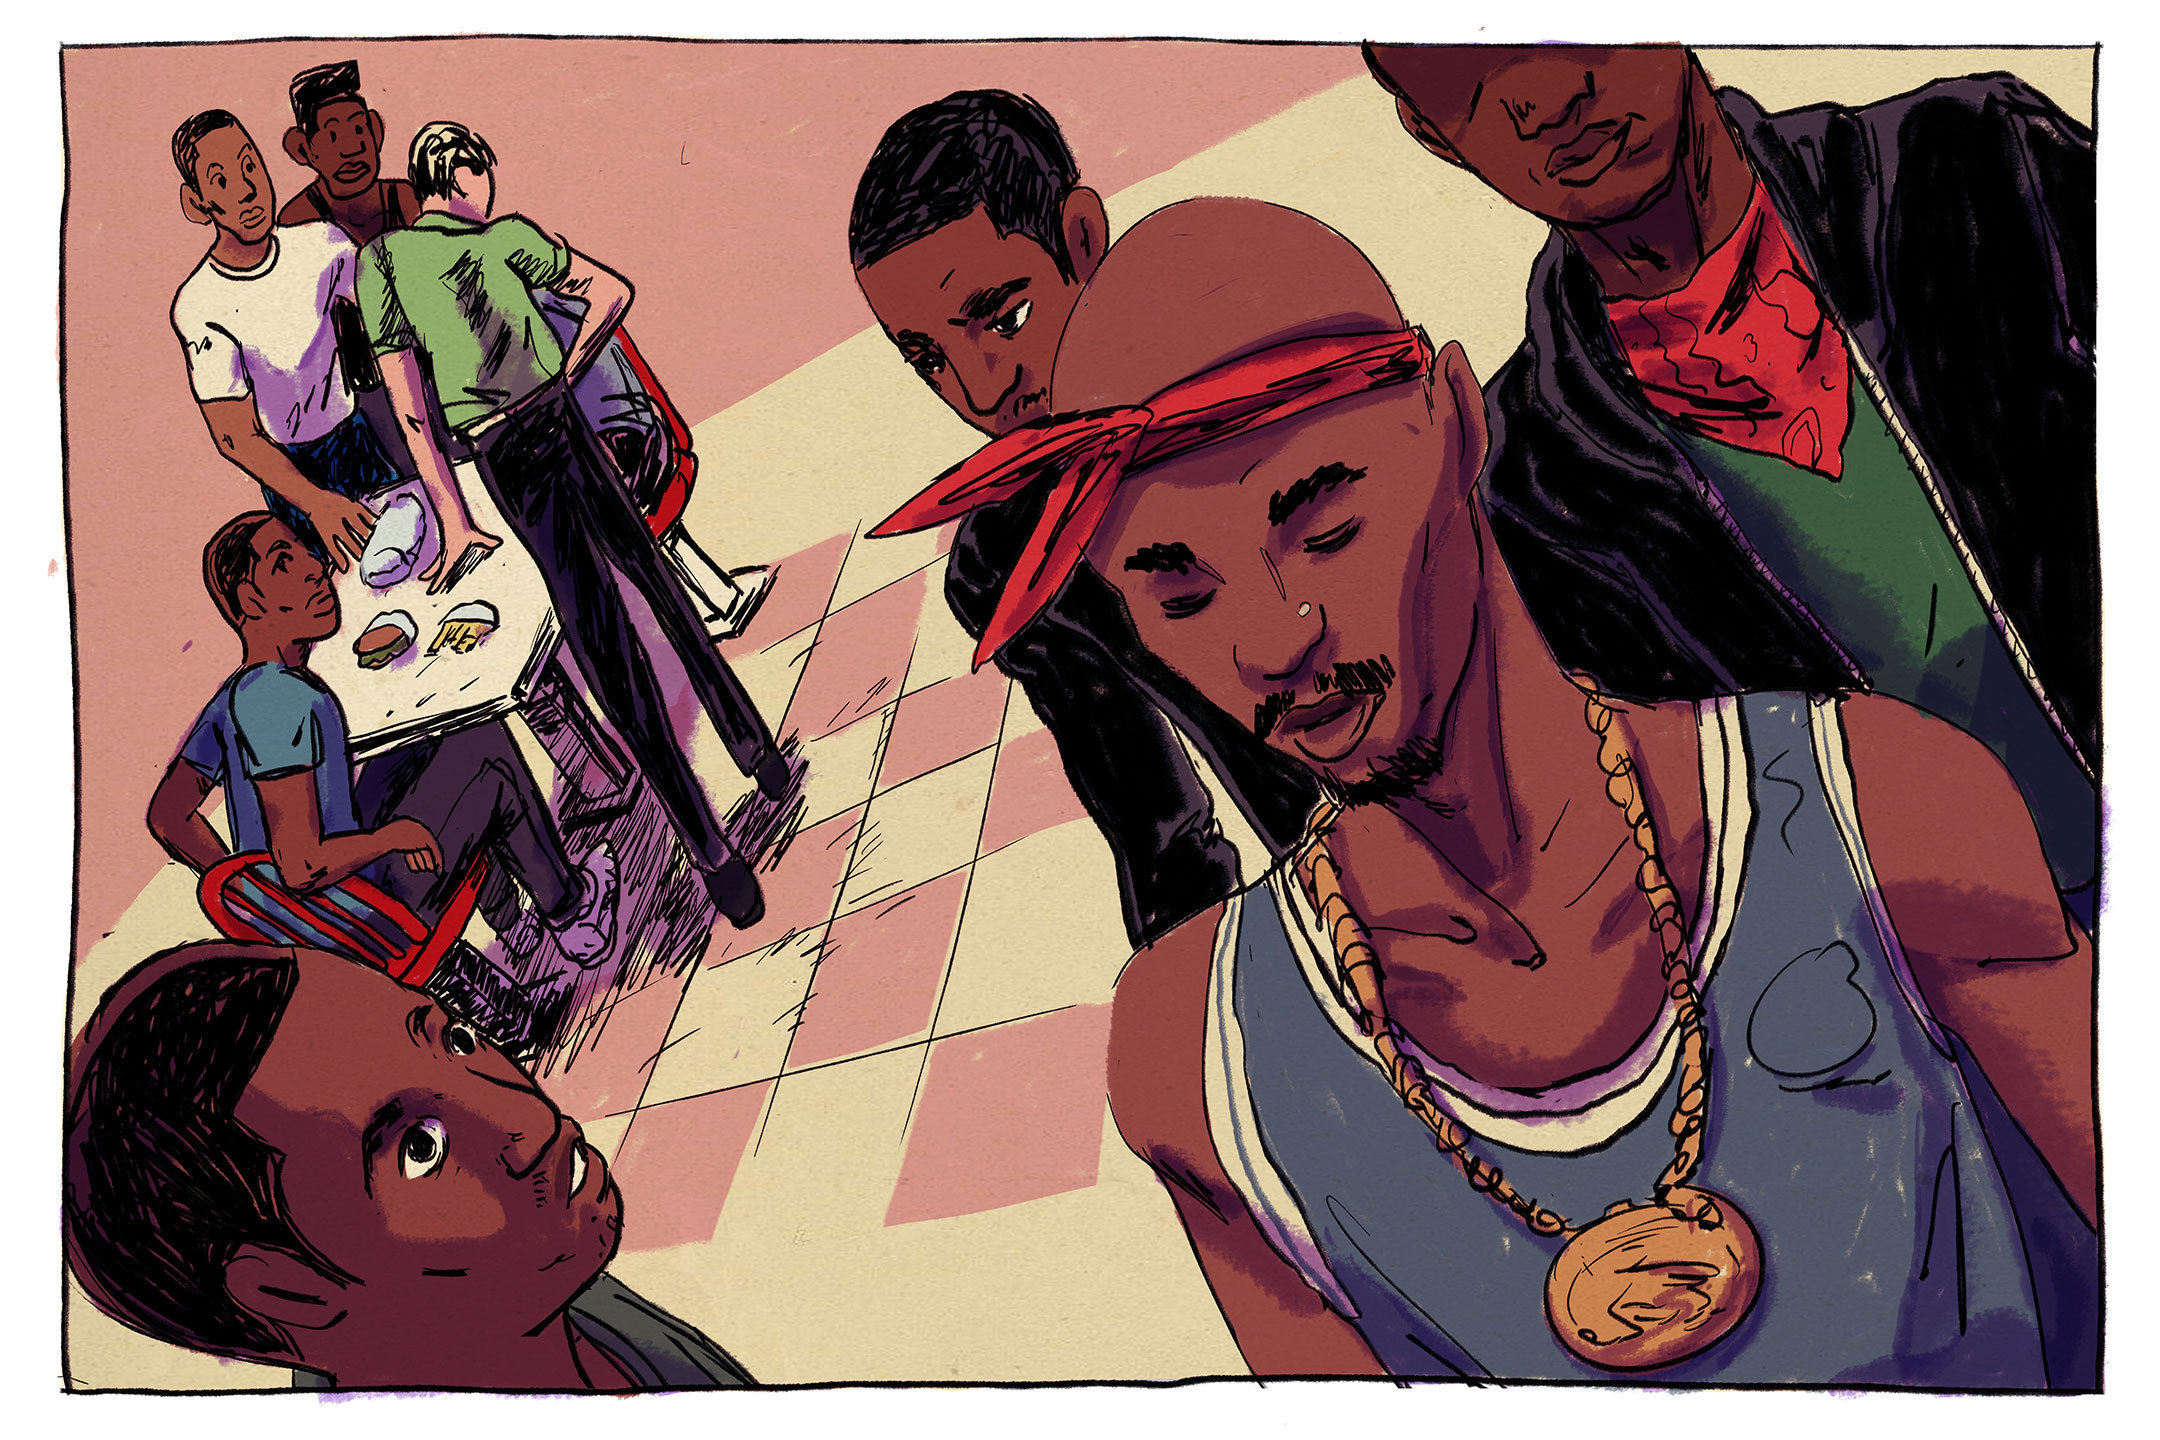 Tupac, Glocks and In-N-Out: A Football Team's Run-in with